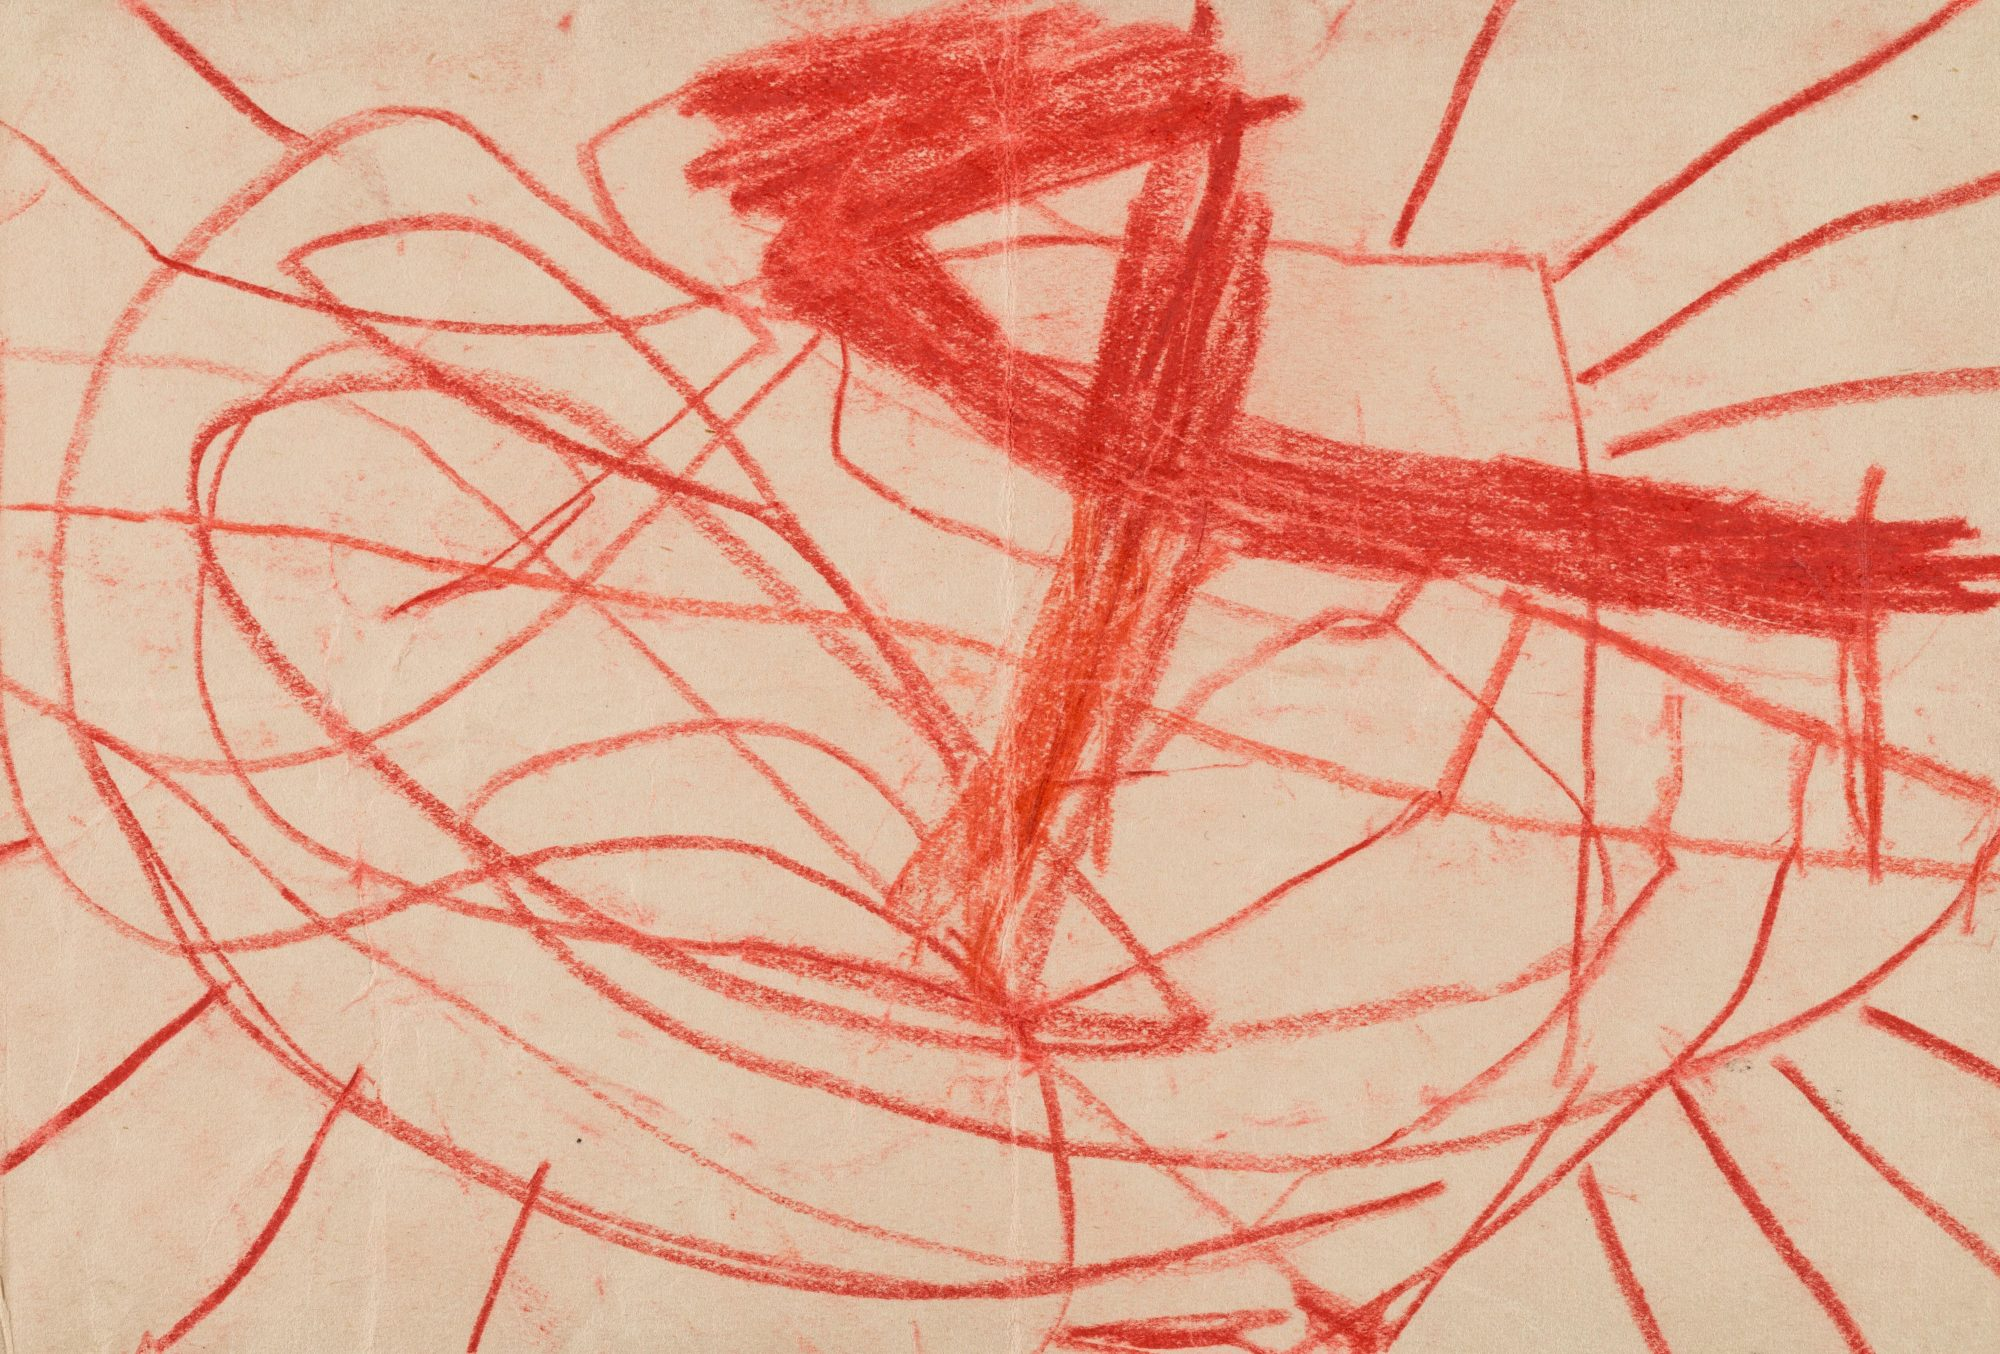 Red crayon drawing by one of Klein's child patients